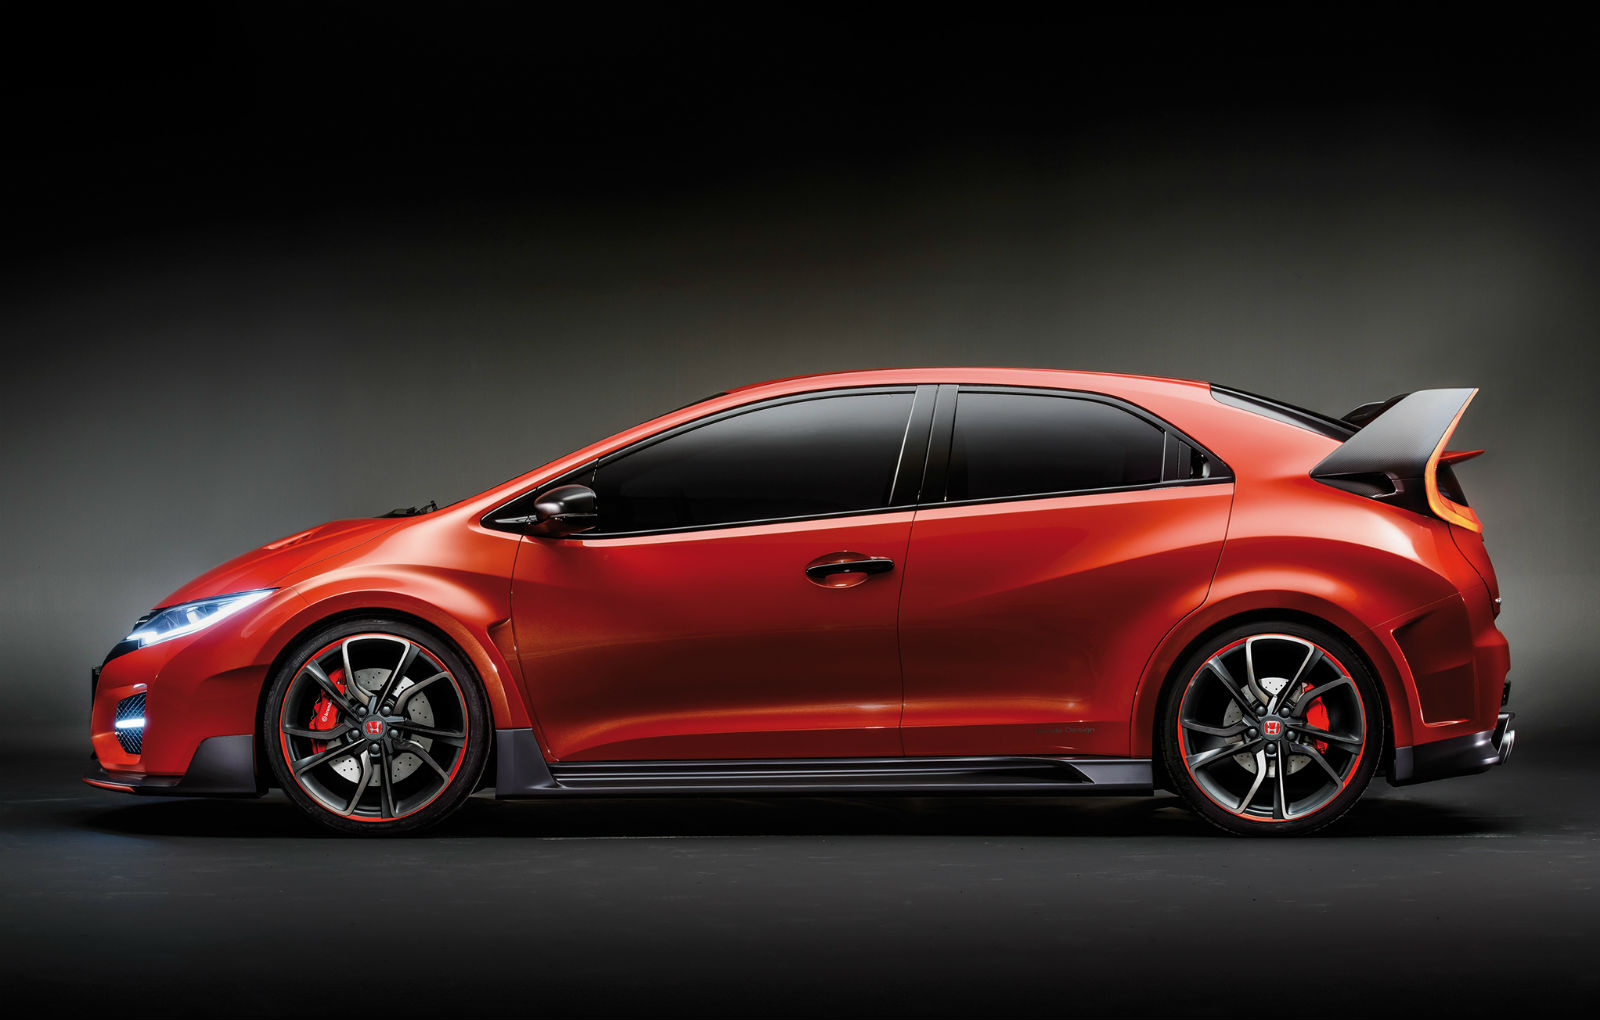 2015 Honda Civic Type R Sport Car Wallpaper   HD 1600x1020